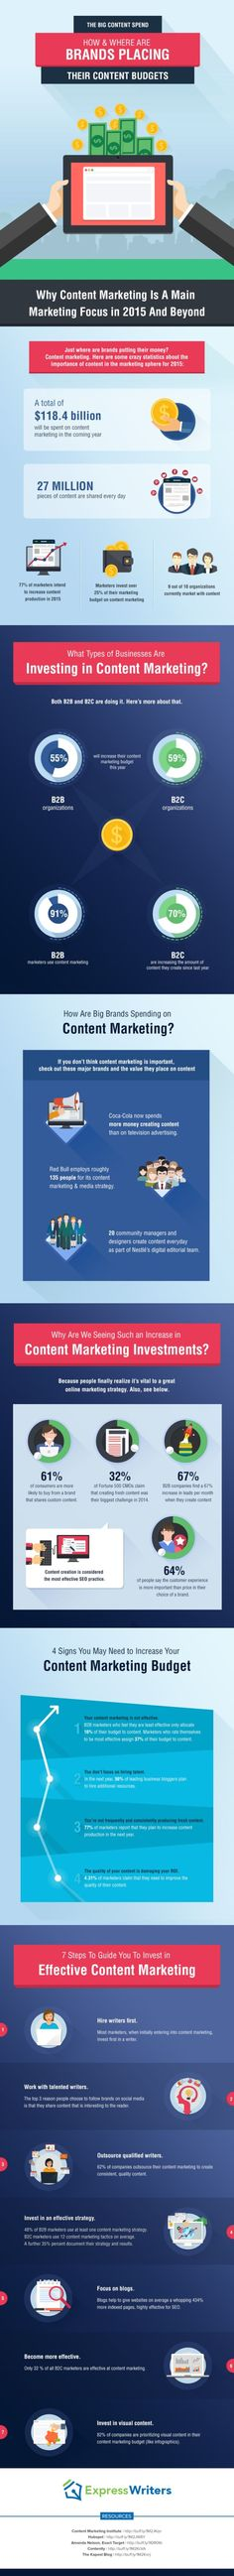 The Big Content Spend